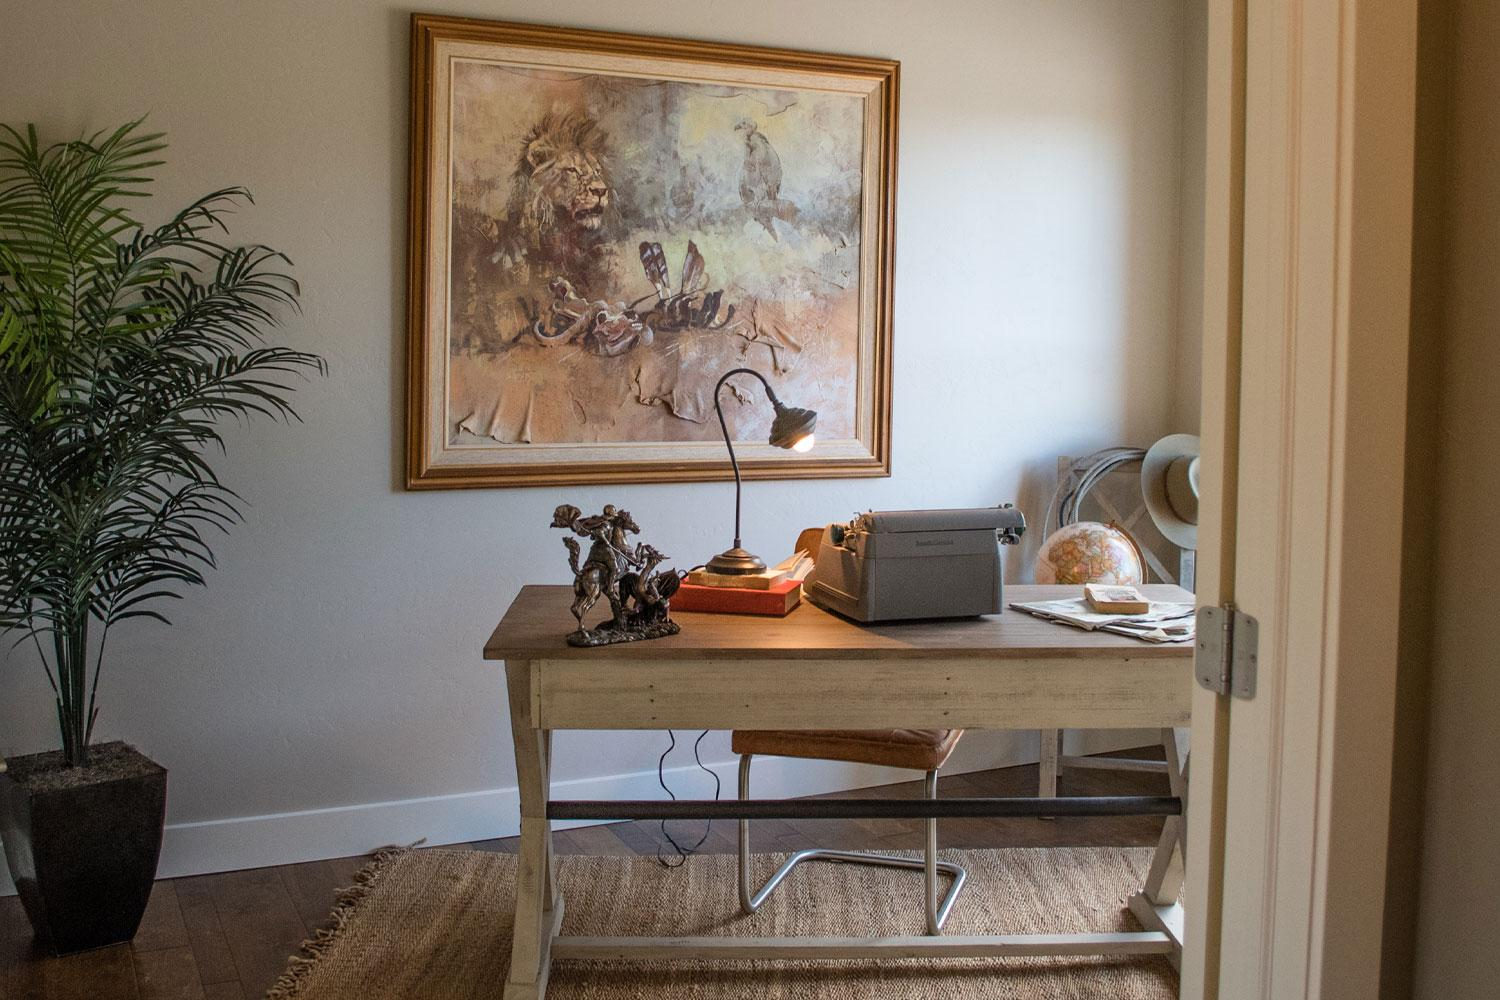 office room with large painting on the wall, one small desk and chair and desk lamp, area rug on the floor